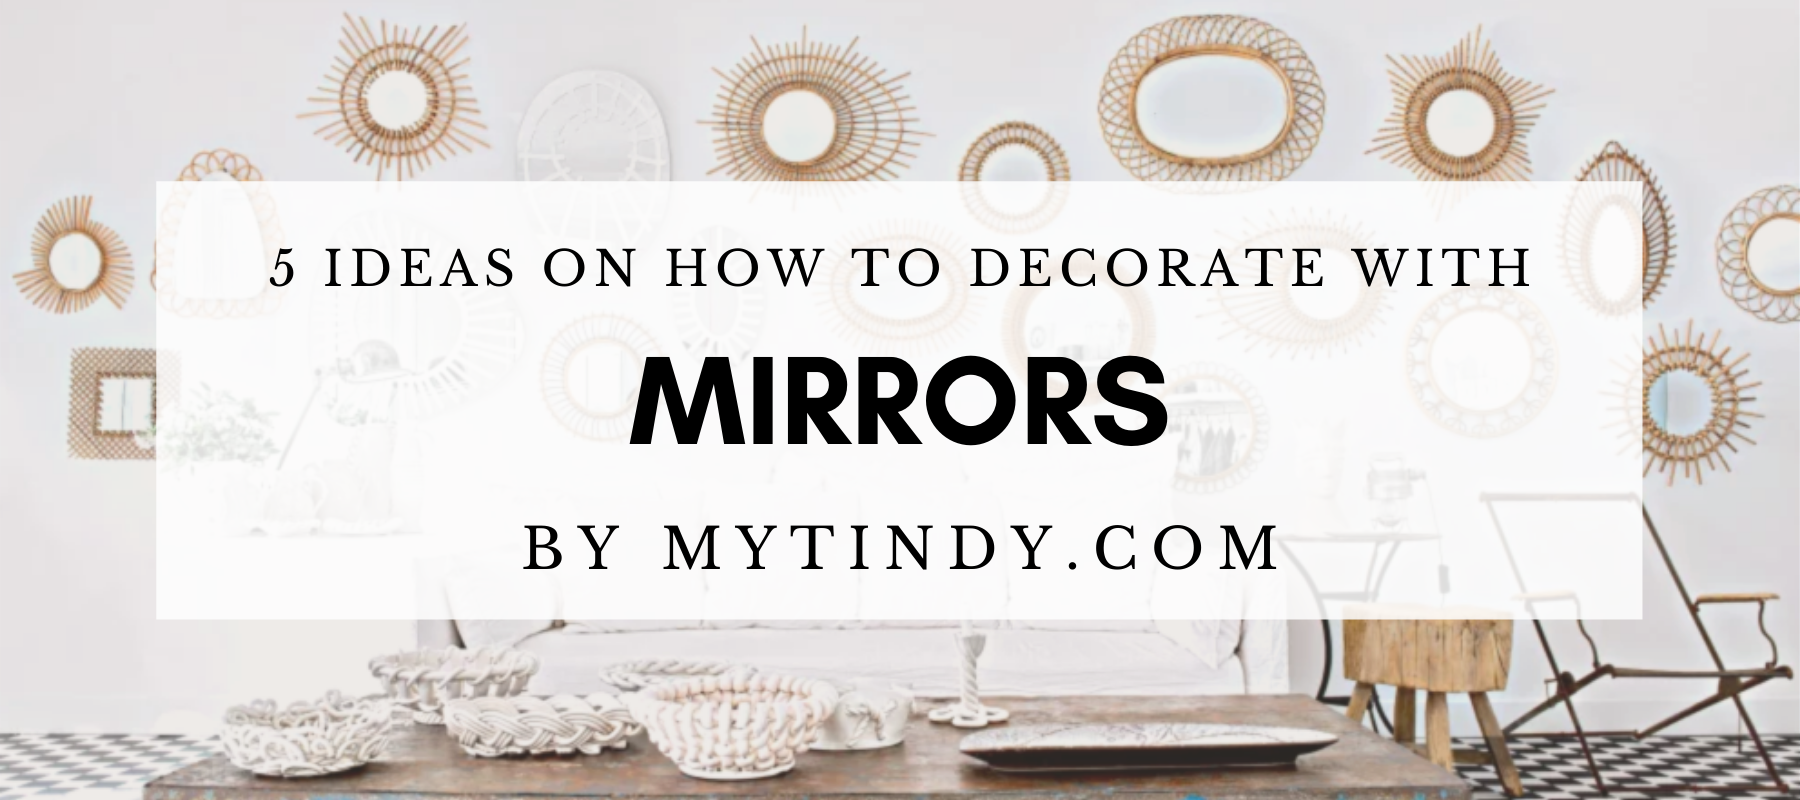 5 ideas on how to decorate your home with mittors